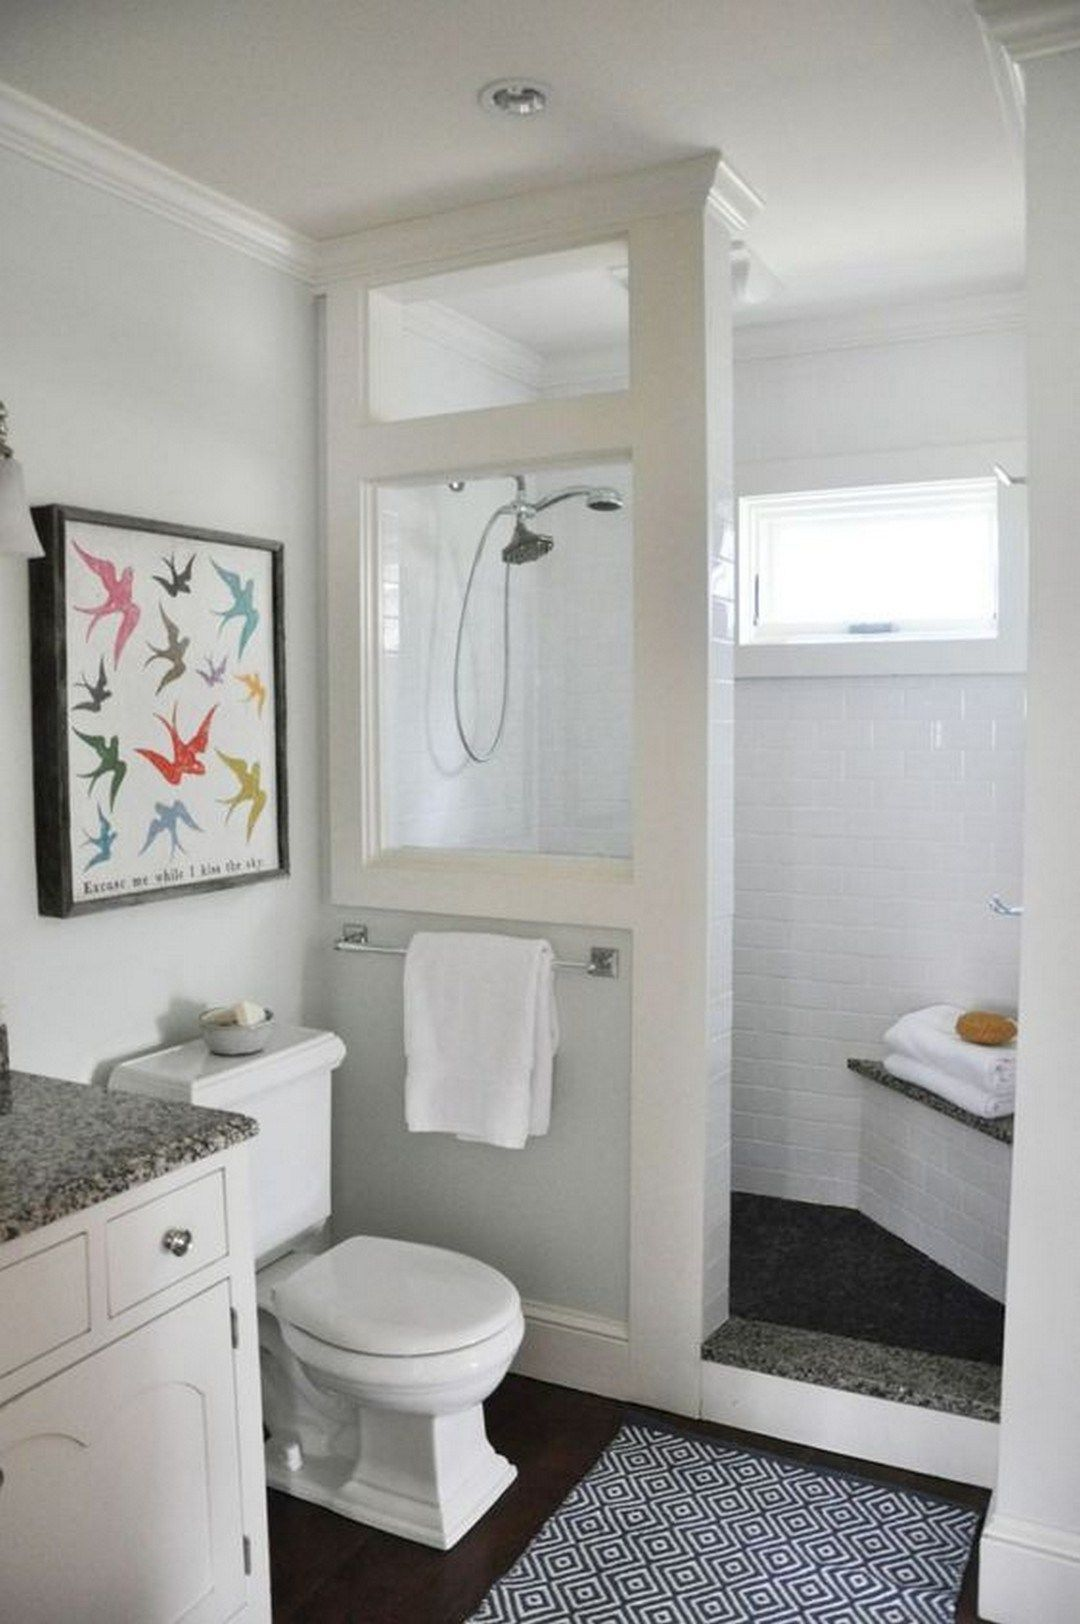 Convert Your Old Style Bathroom With This Small Master Bathroom